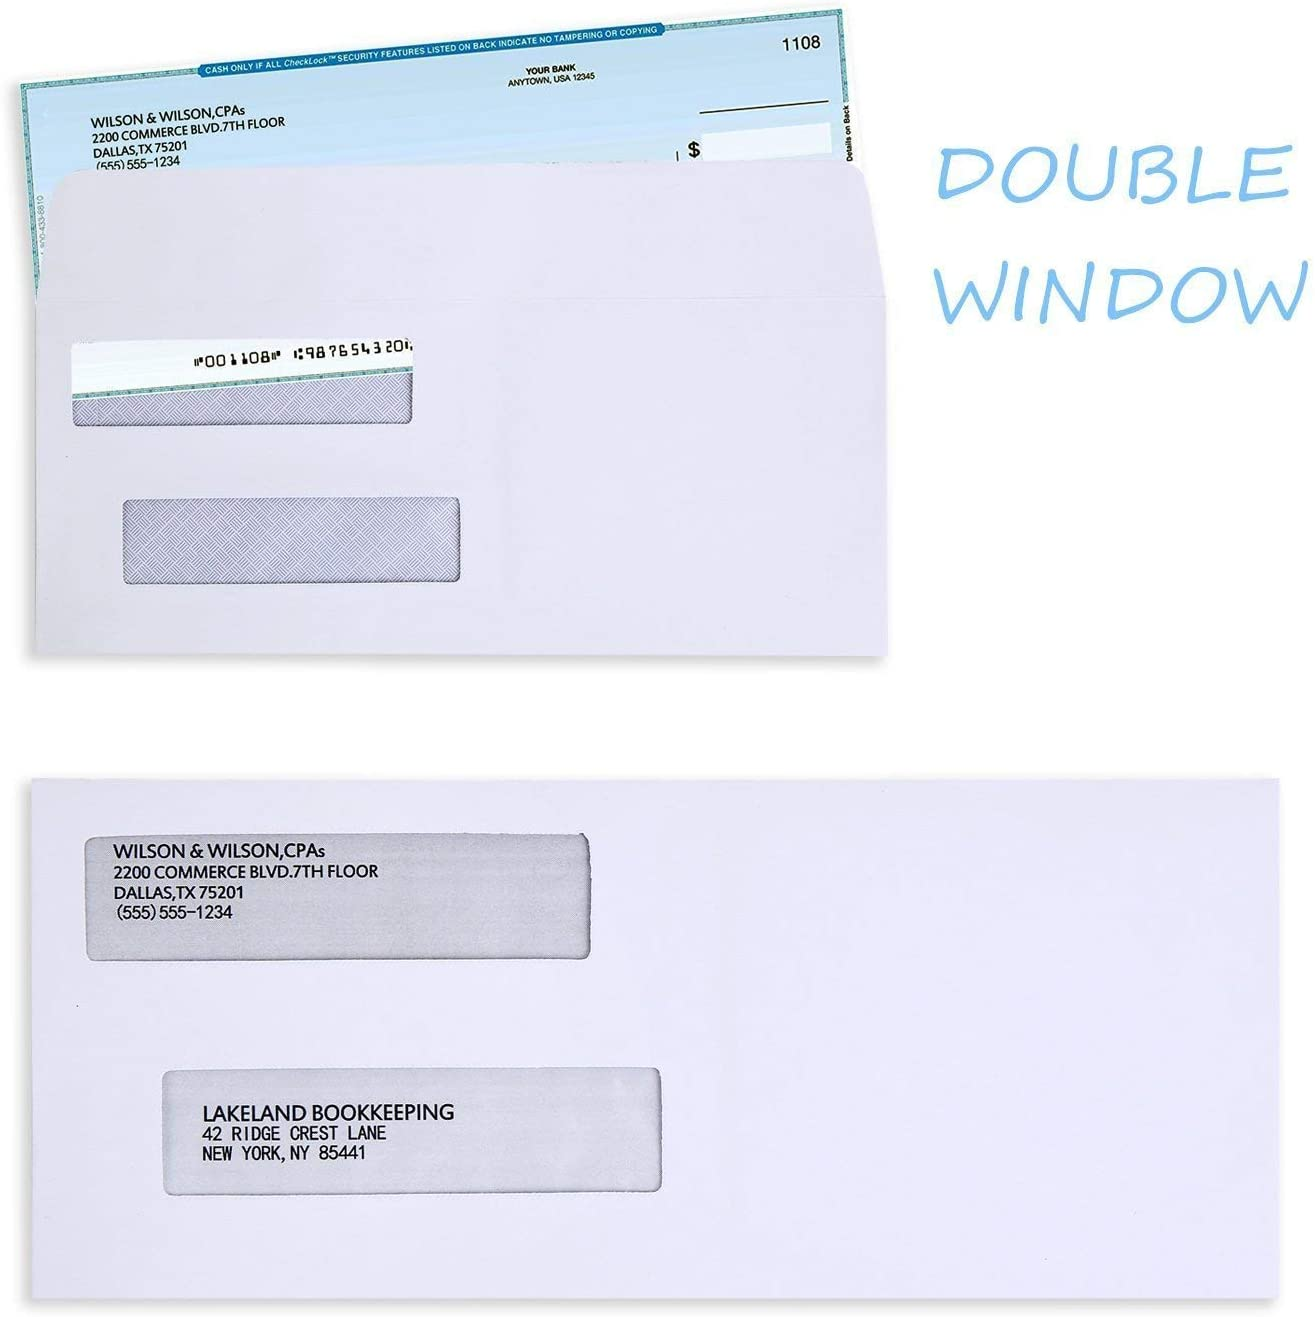 Documents Secure Mailing Ohuhu 500 Pack # 8 Double Window Envelope SELF SEAL Adhesive Tinted Security Envelopes Quickbooks Check A Letter Opener Included Business Check 3 5//8 x 8 11//16 Inches